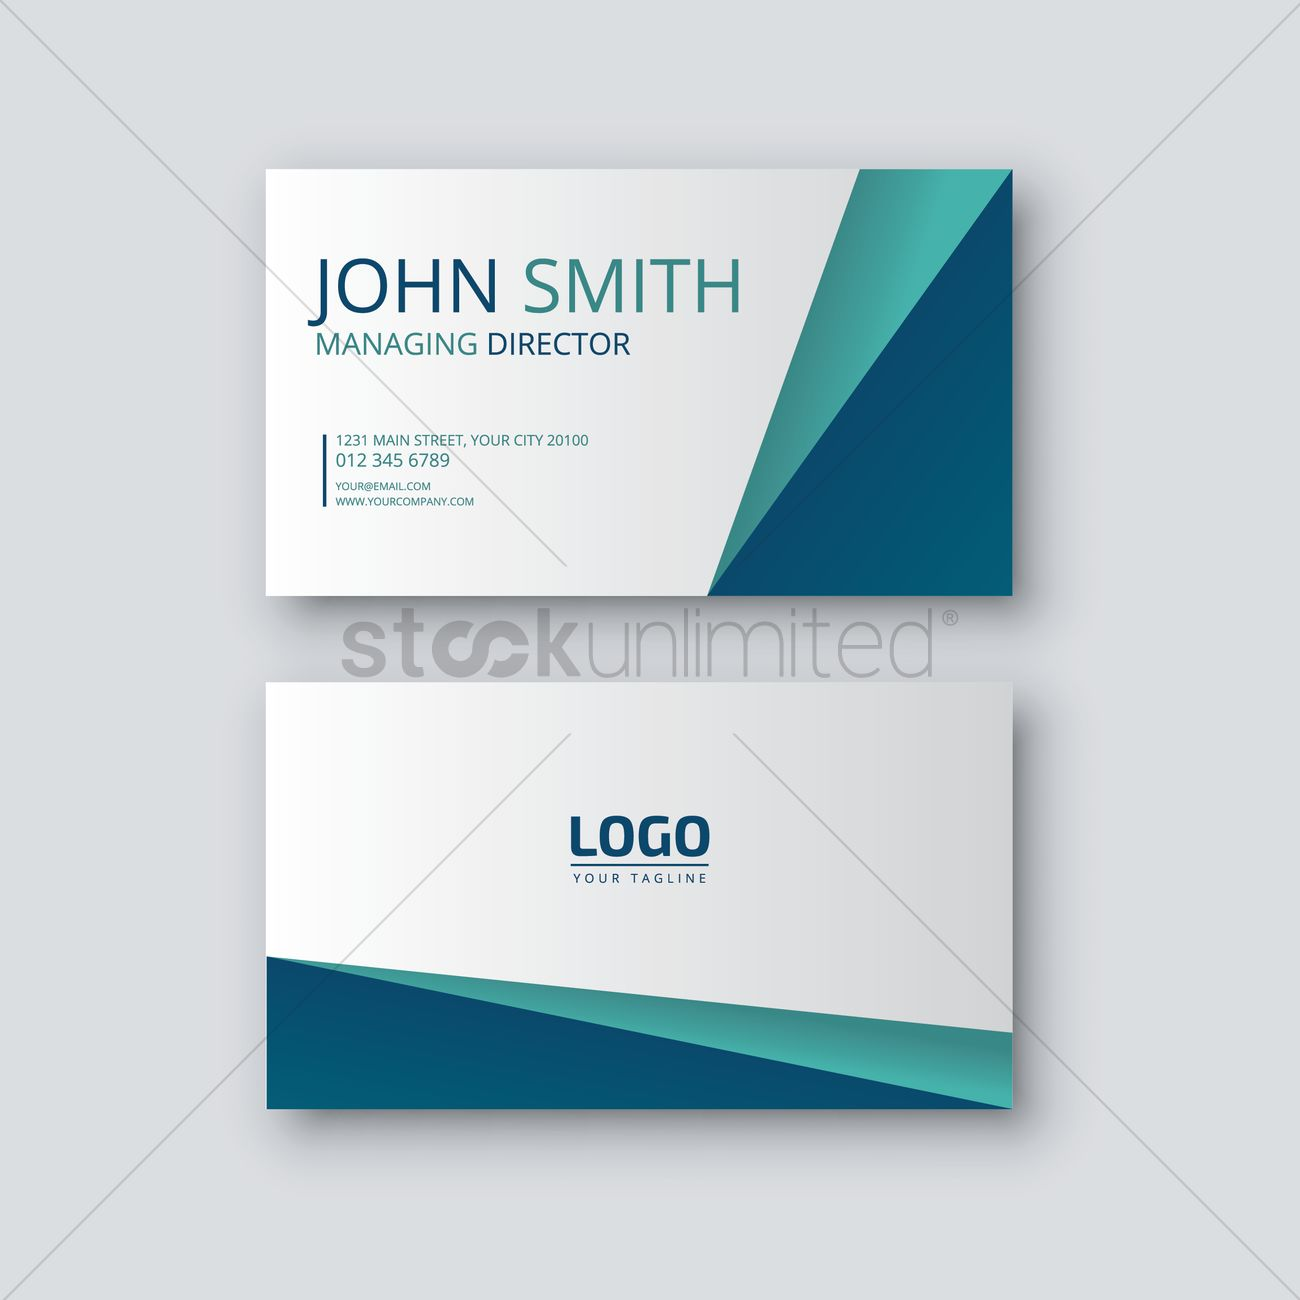 Visiting card vector image 1823276 stockunlimited visiting card vector graphic colourmoves Choice Image